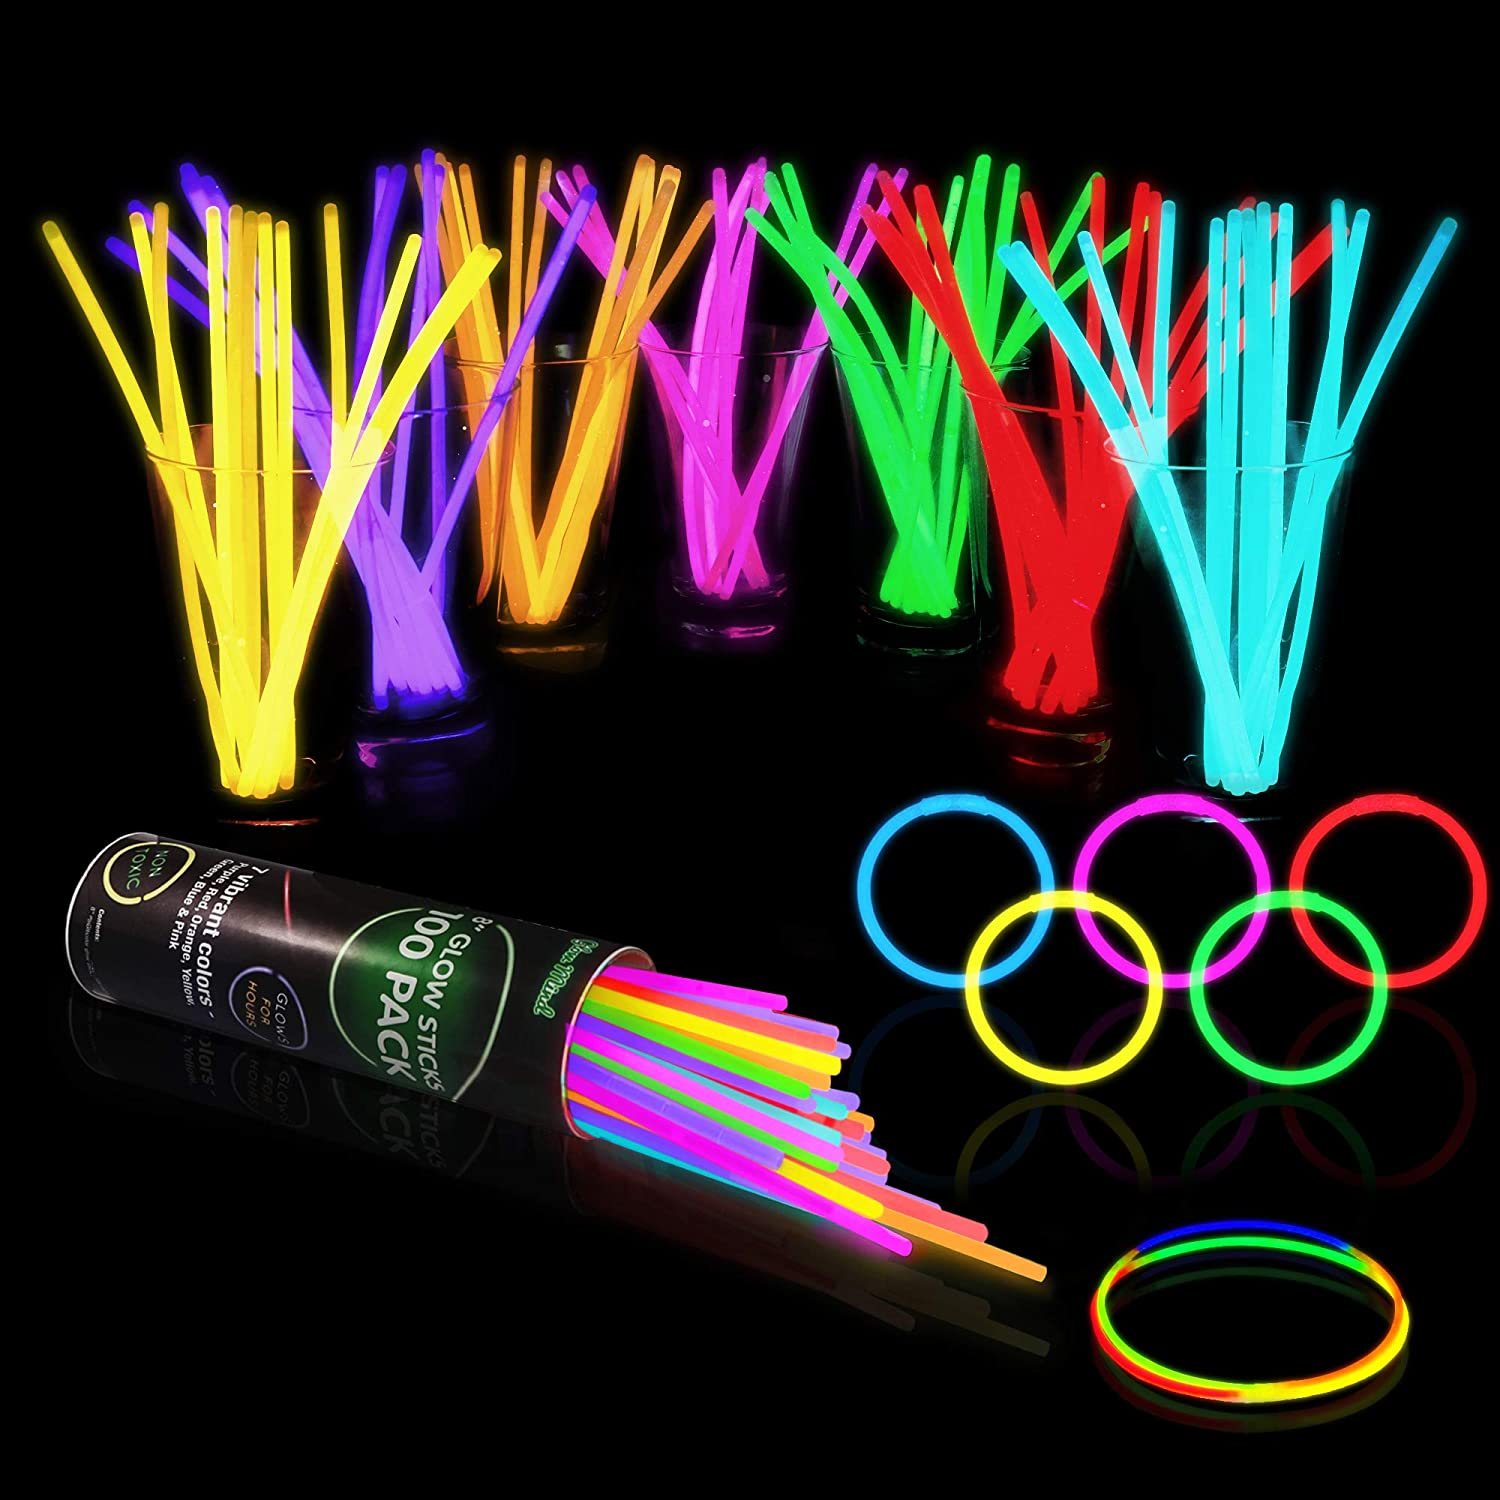 100 Glow Sticks Bulk Party Supplies - Glow in The Dark Fun Party Pack with 8